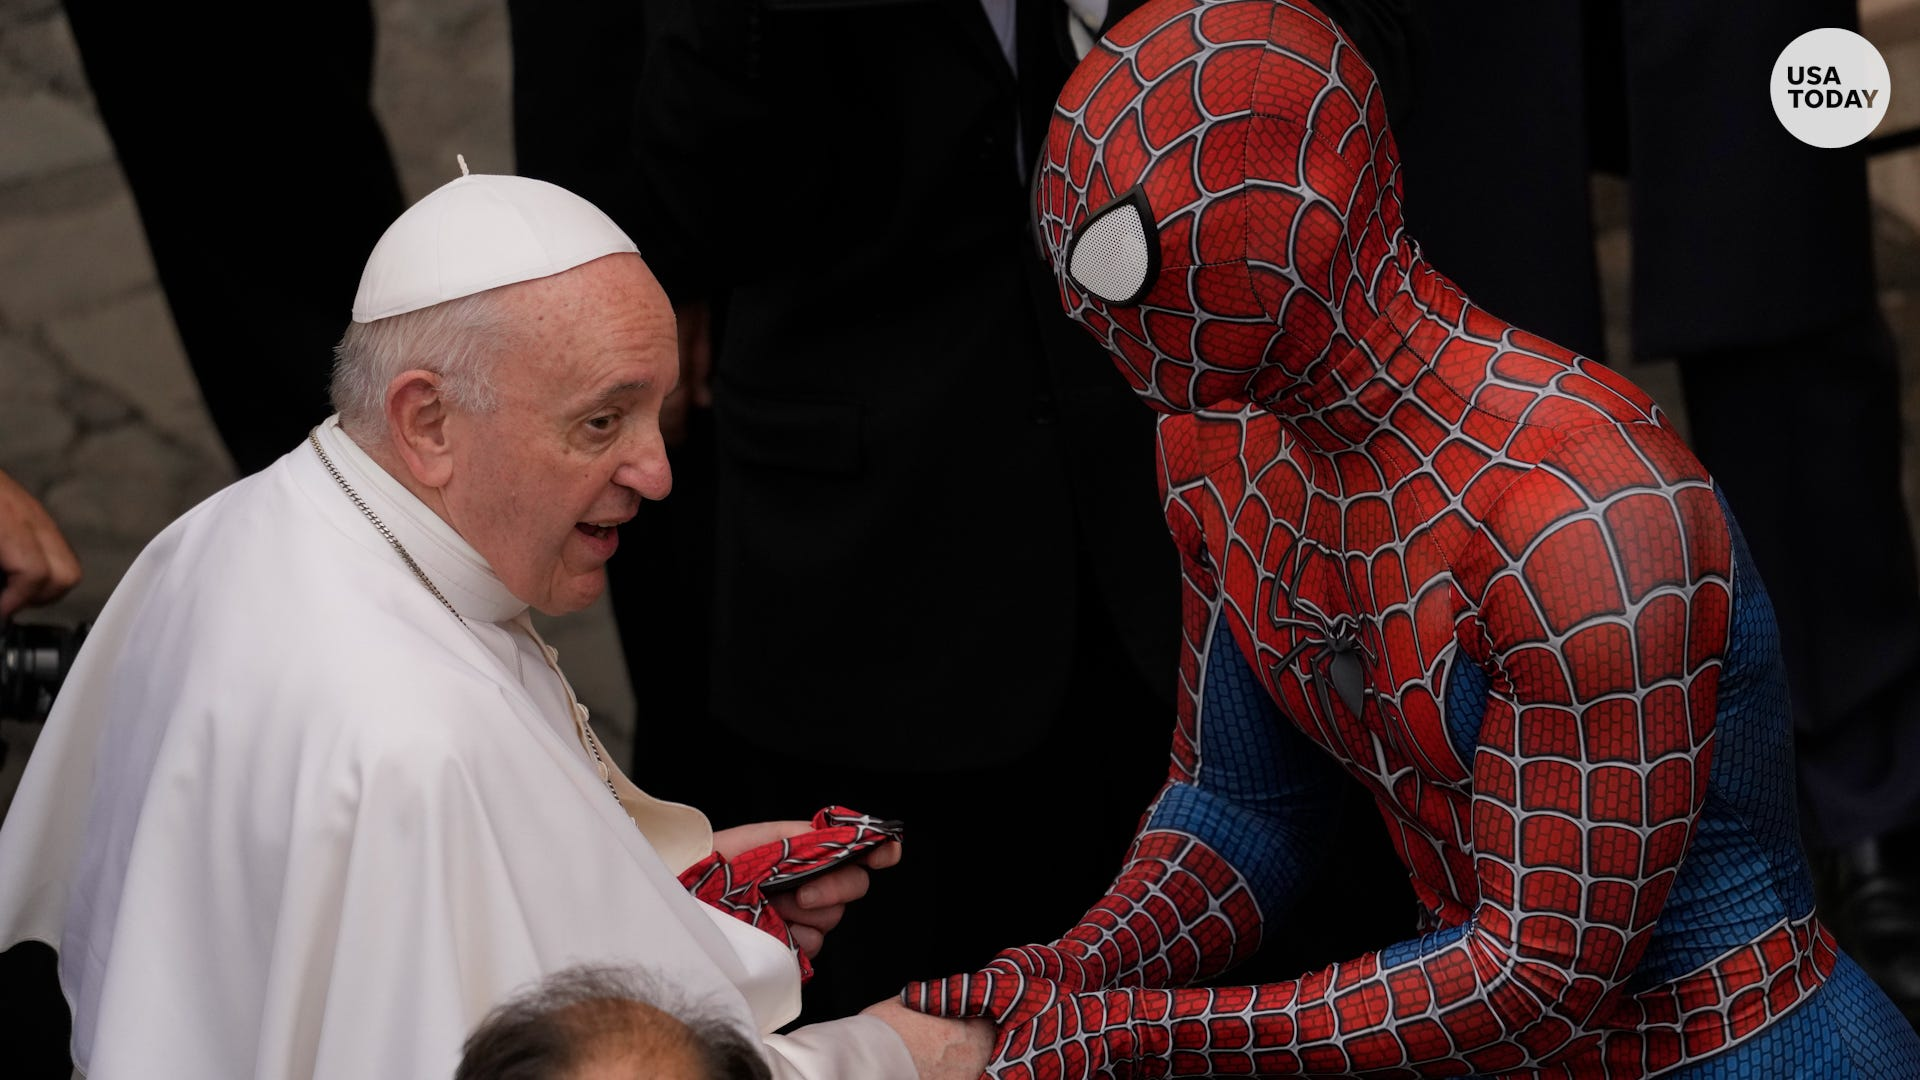 'Spider-Man' visited Pope Francis at the Vatican for a very special reason